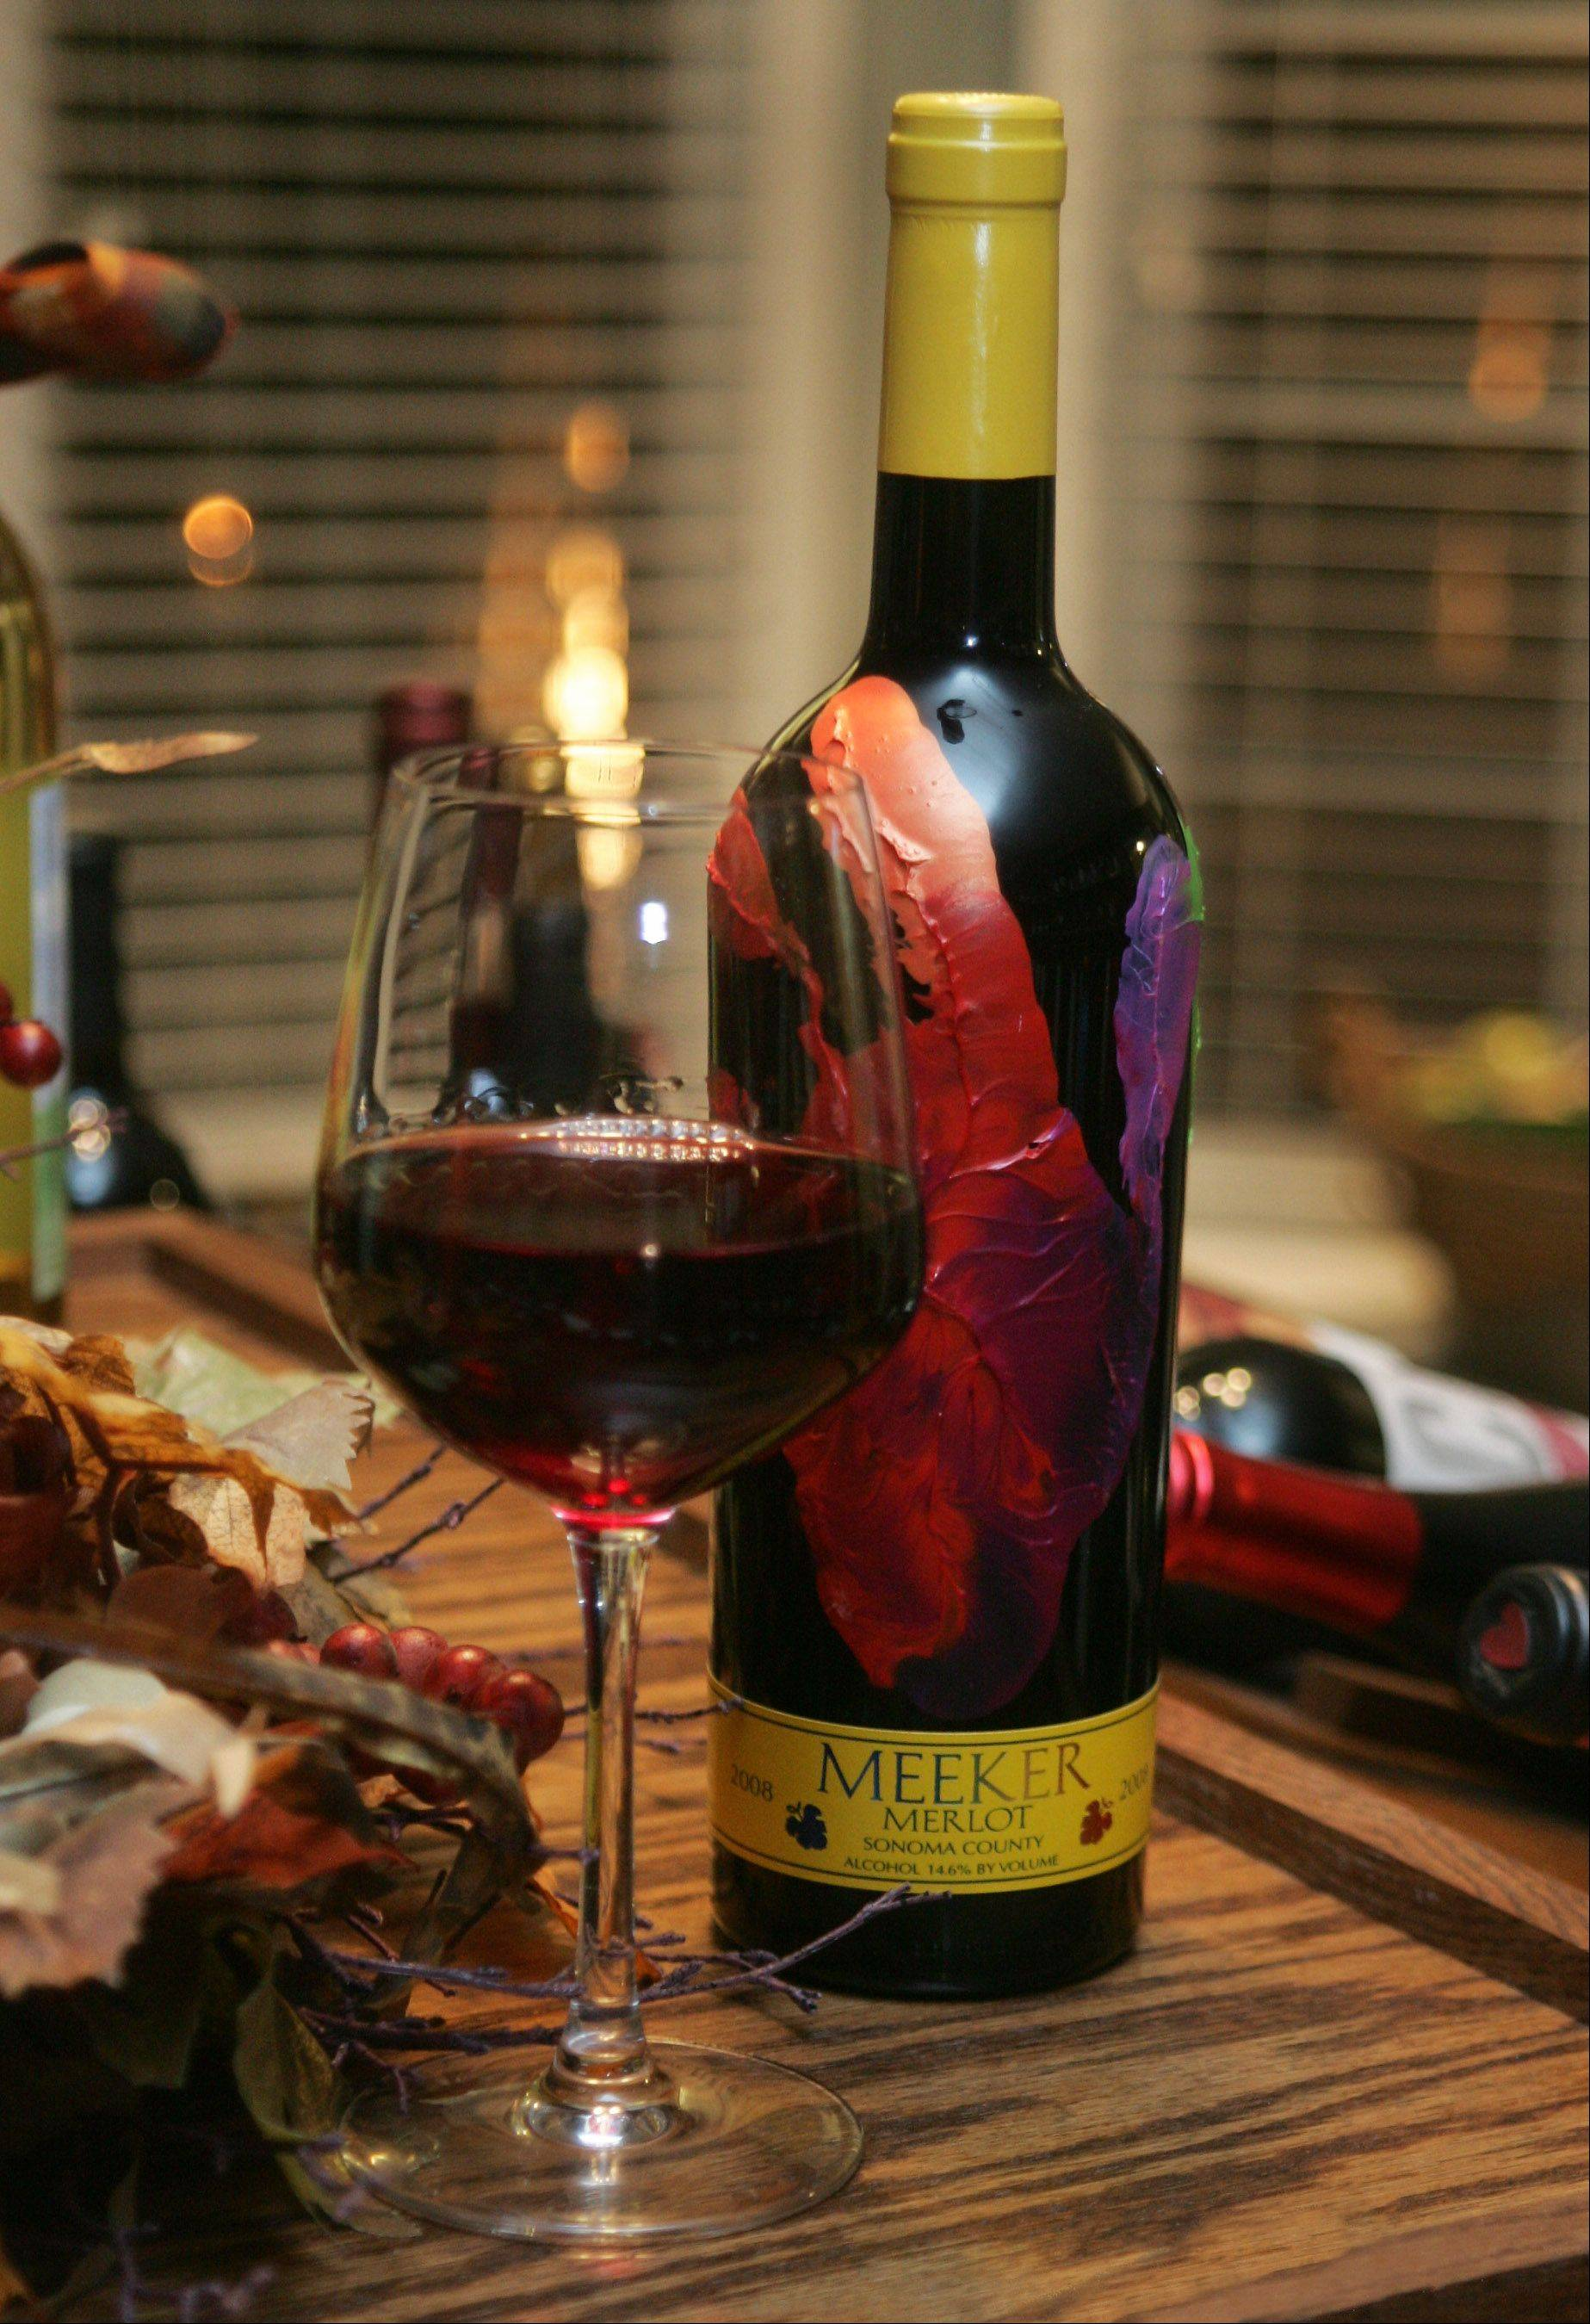 Meeker Merlot is just one of many options at WineSplash in Long Grove.